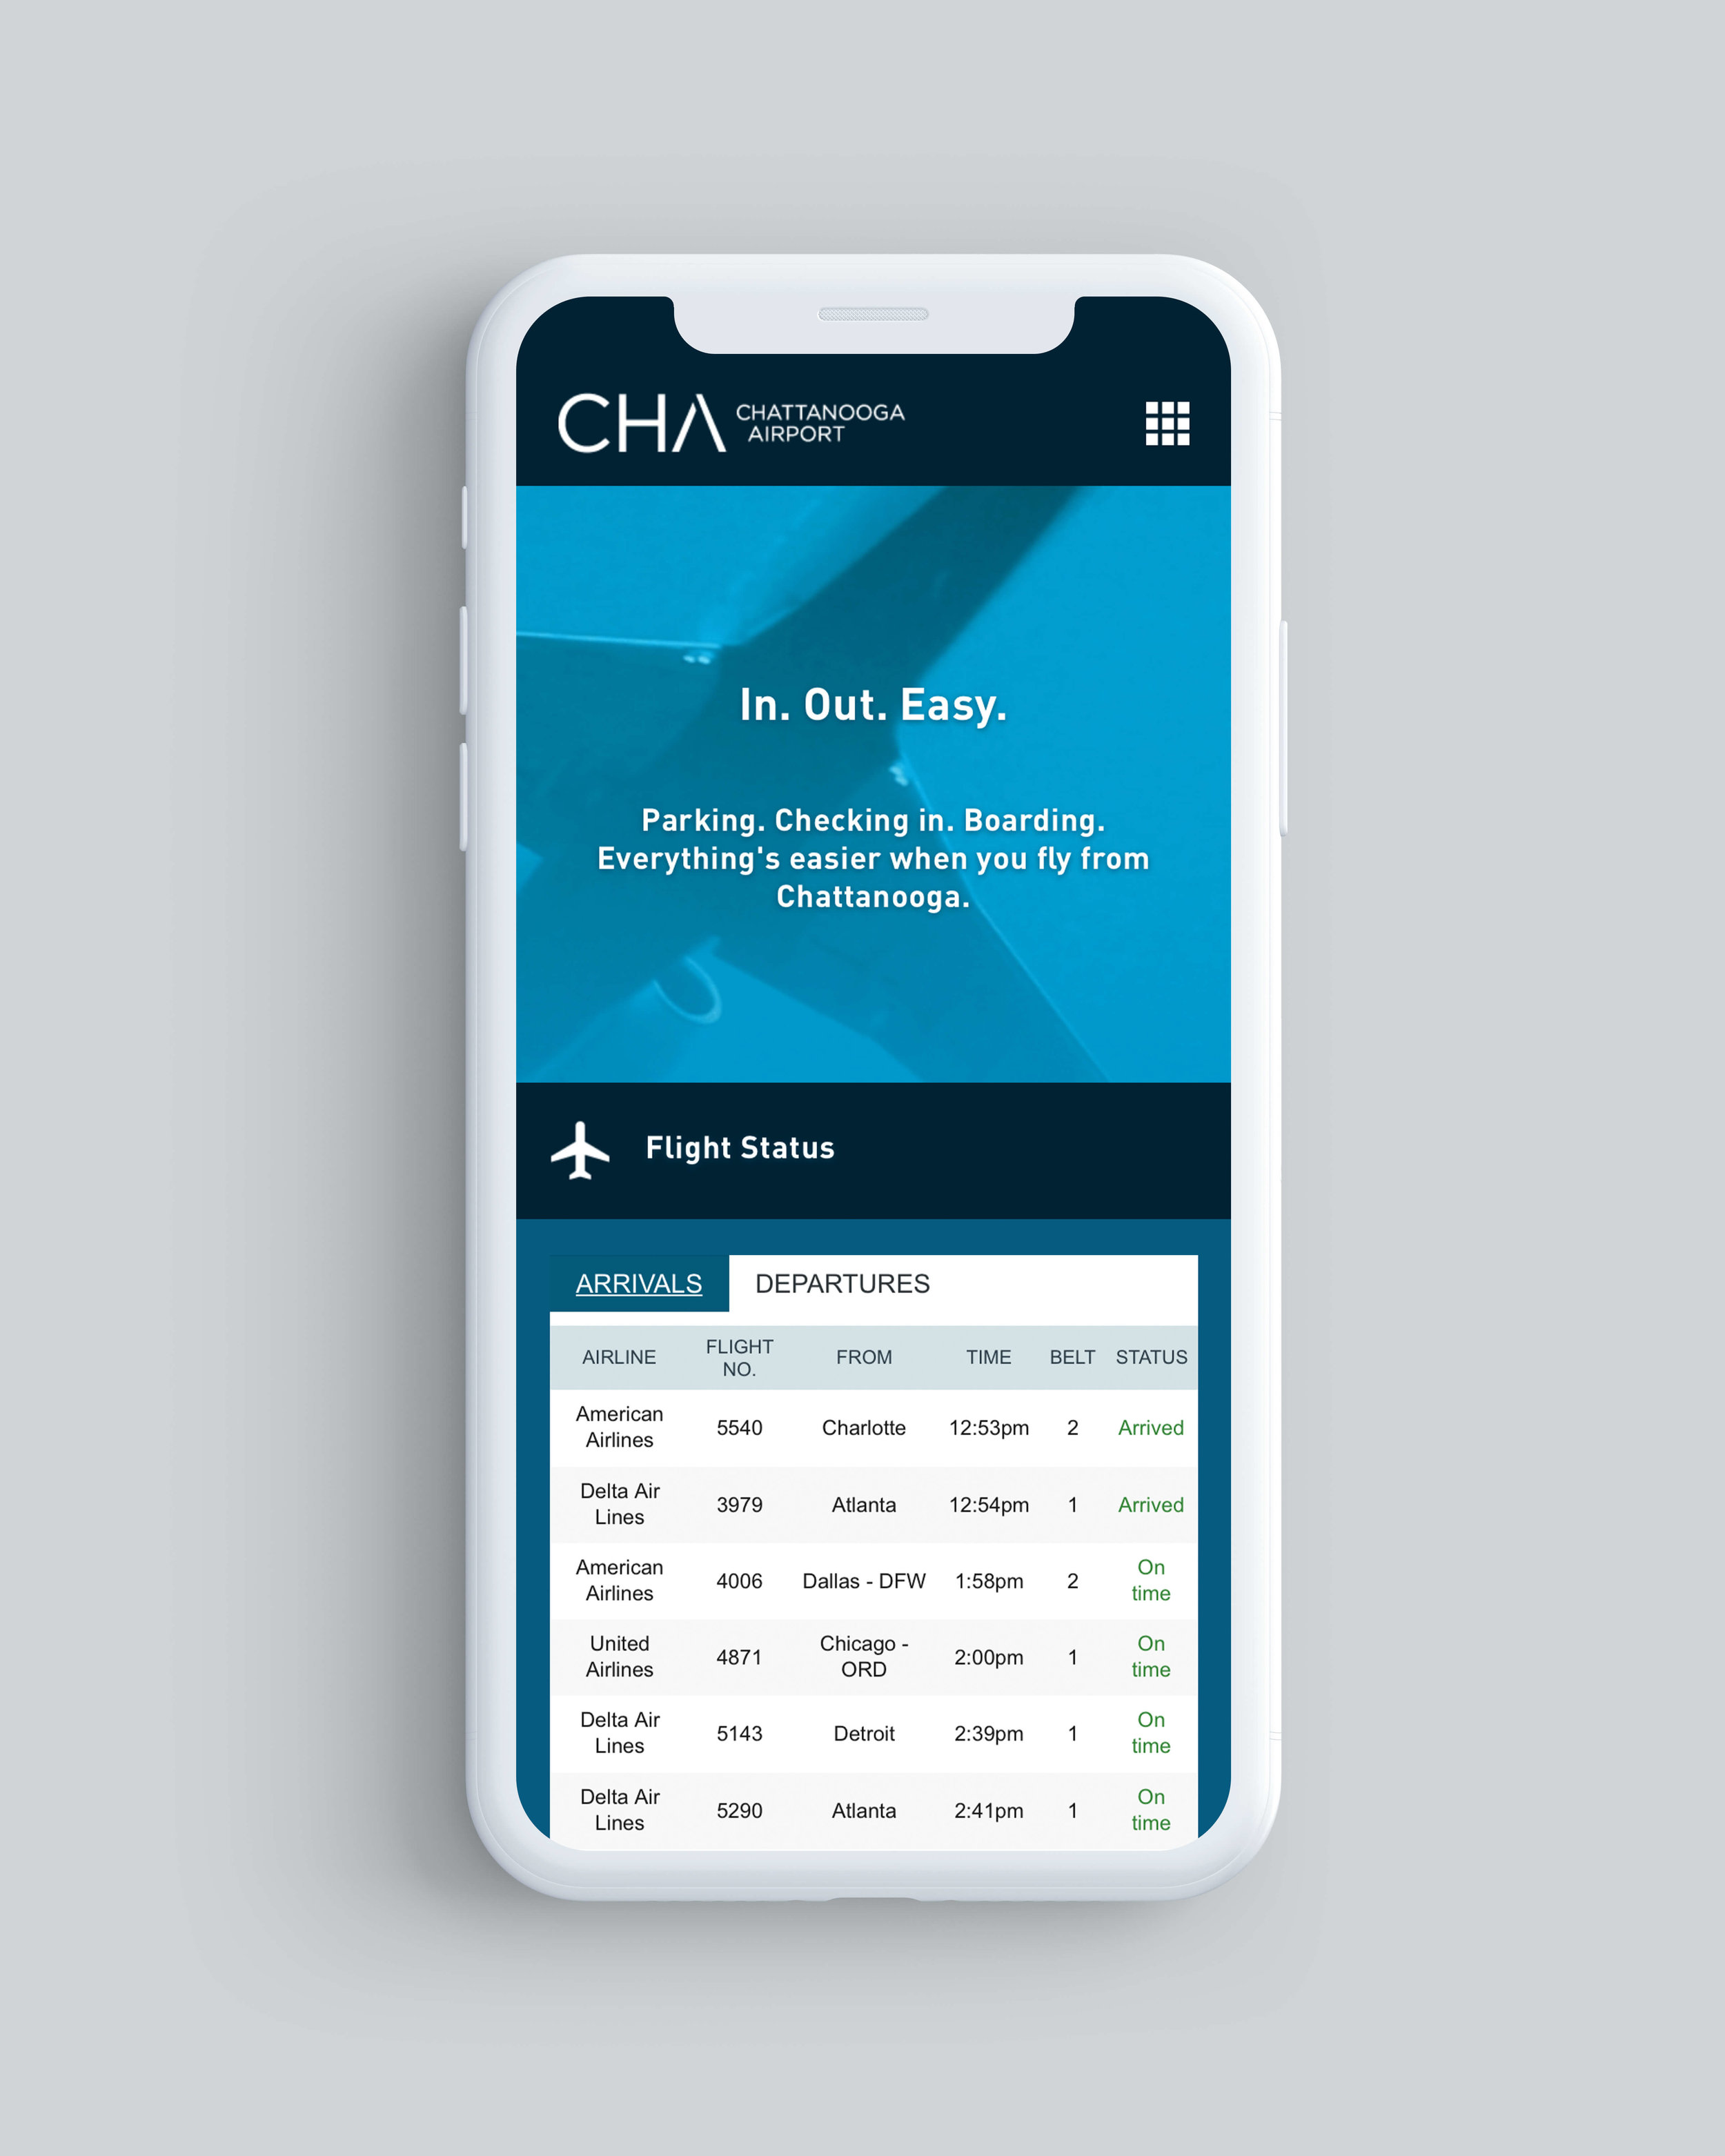 chattanooga-airport-website-mobile-01.jpg